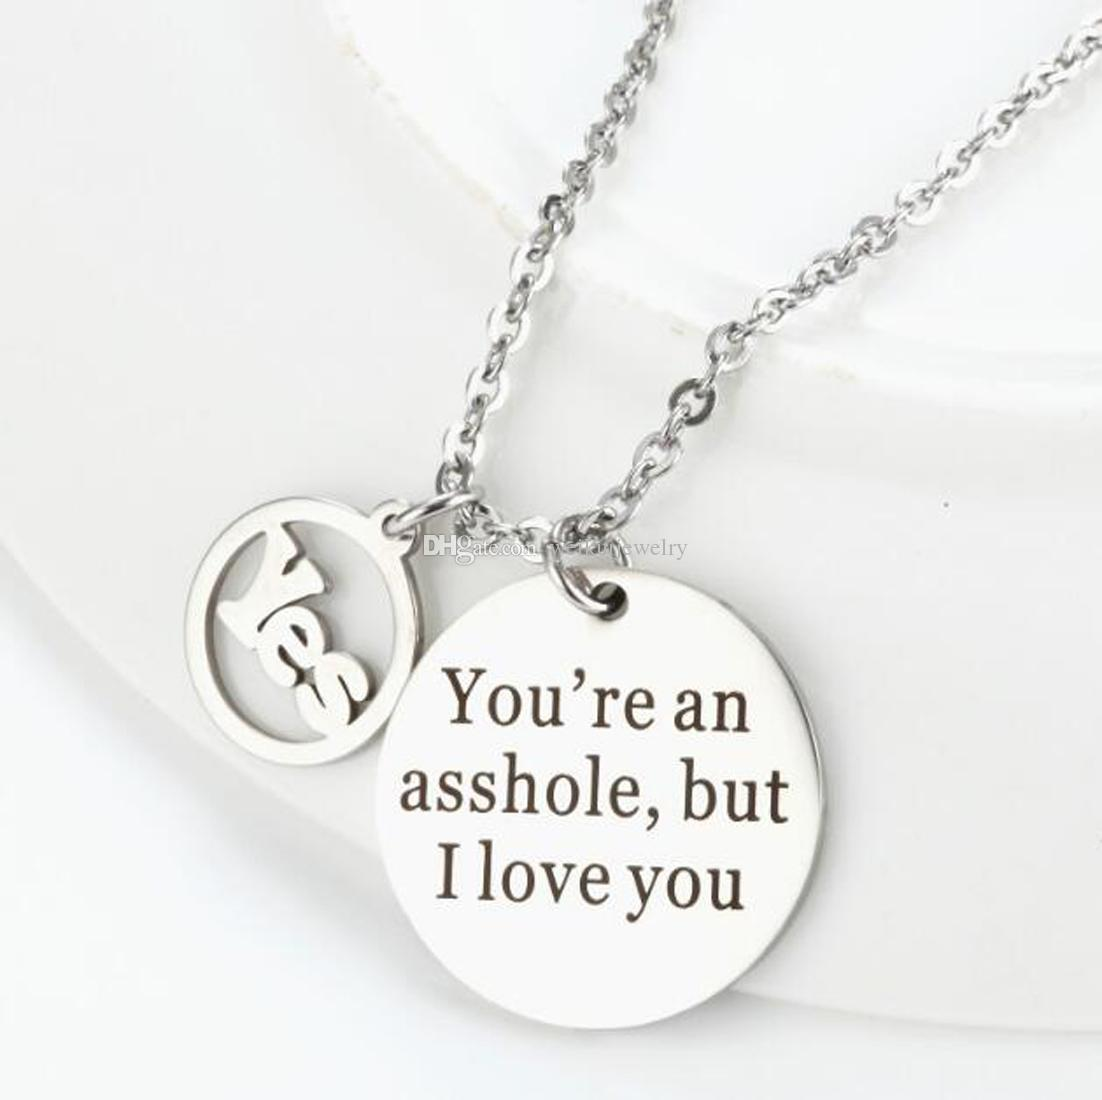 Stainless steel Round Necklace Hollow Pendant You're an Asshole but I Love You Gift for Boyfriend Husband Birthday Valentines Day